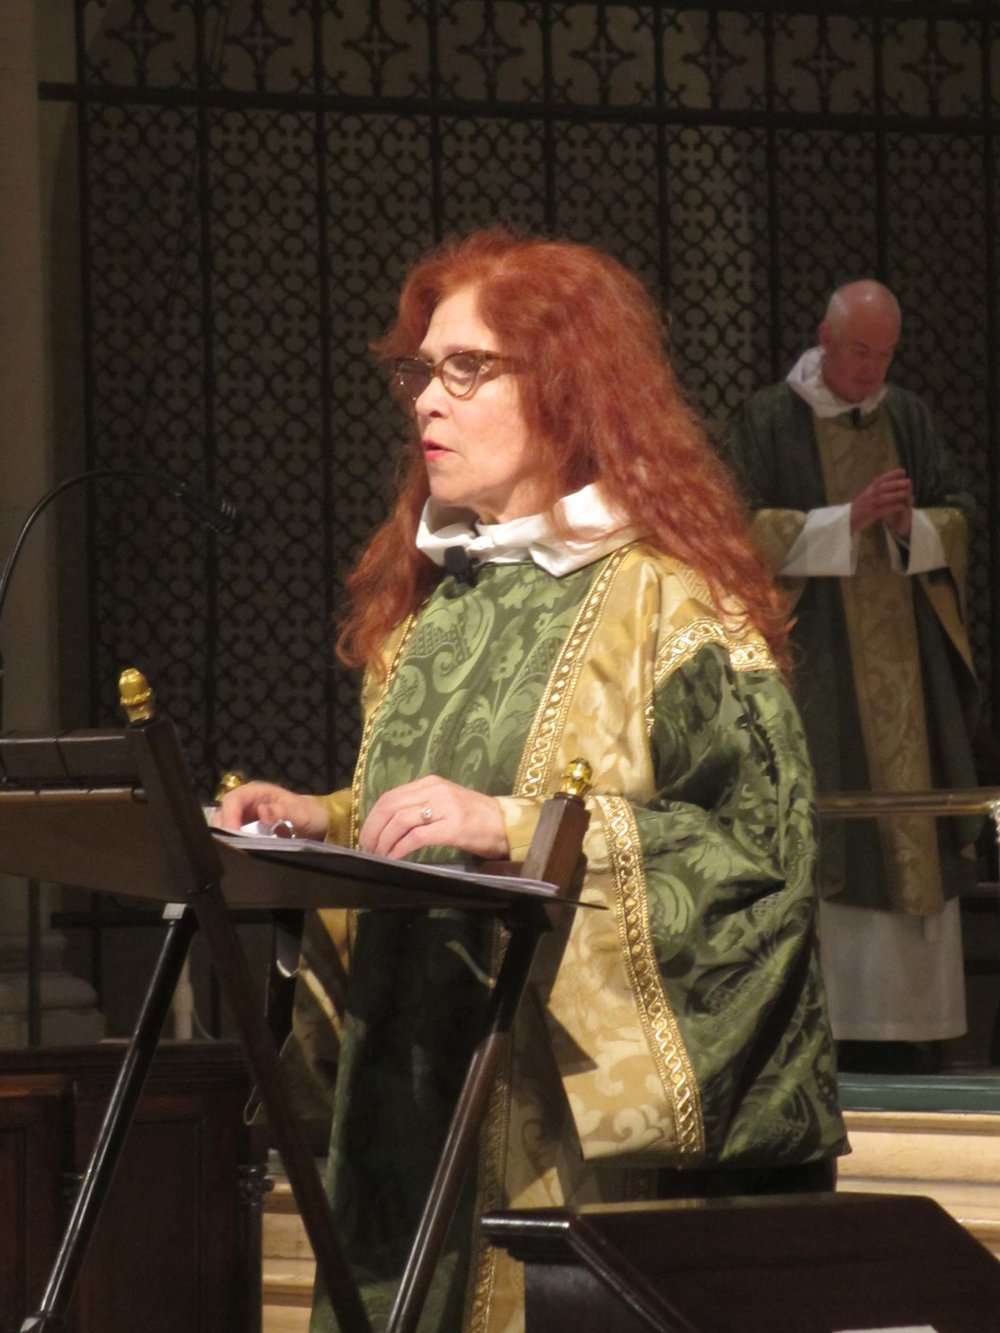 Deacon Rebecca Weiner Tompkins leads the Prayers of the People at Solemn Mass.